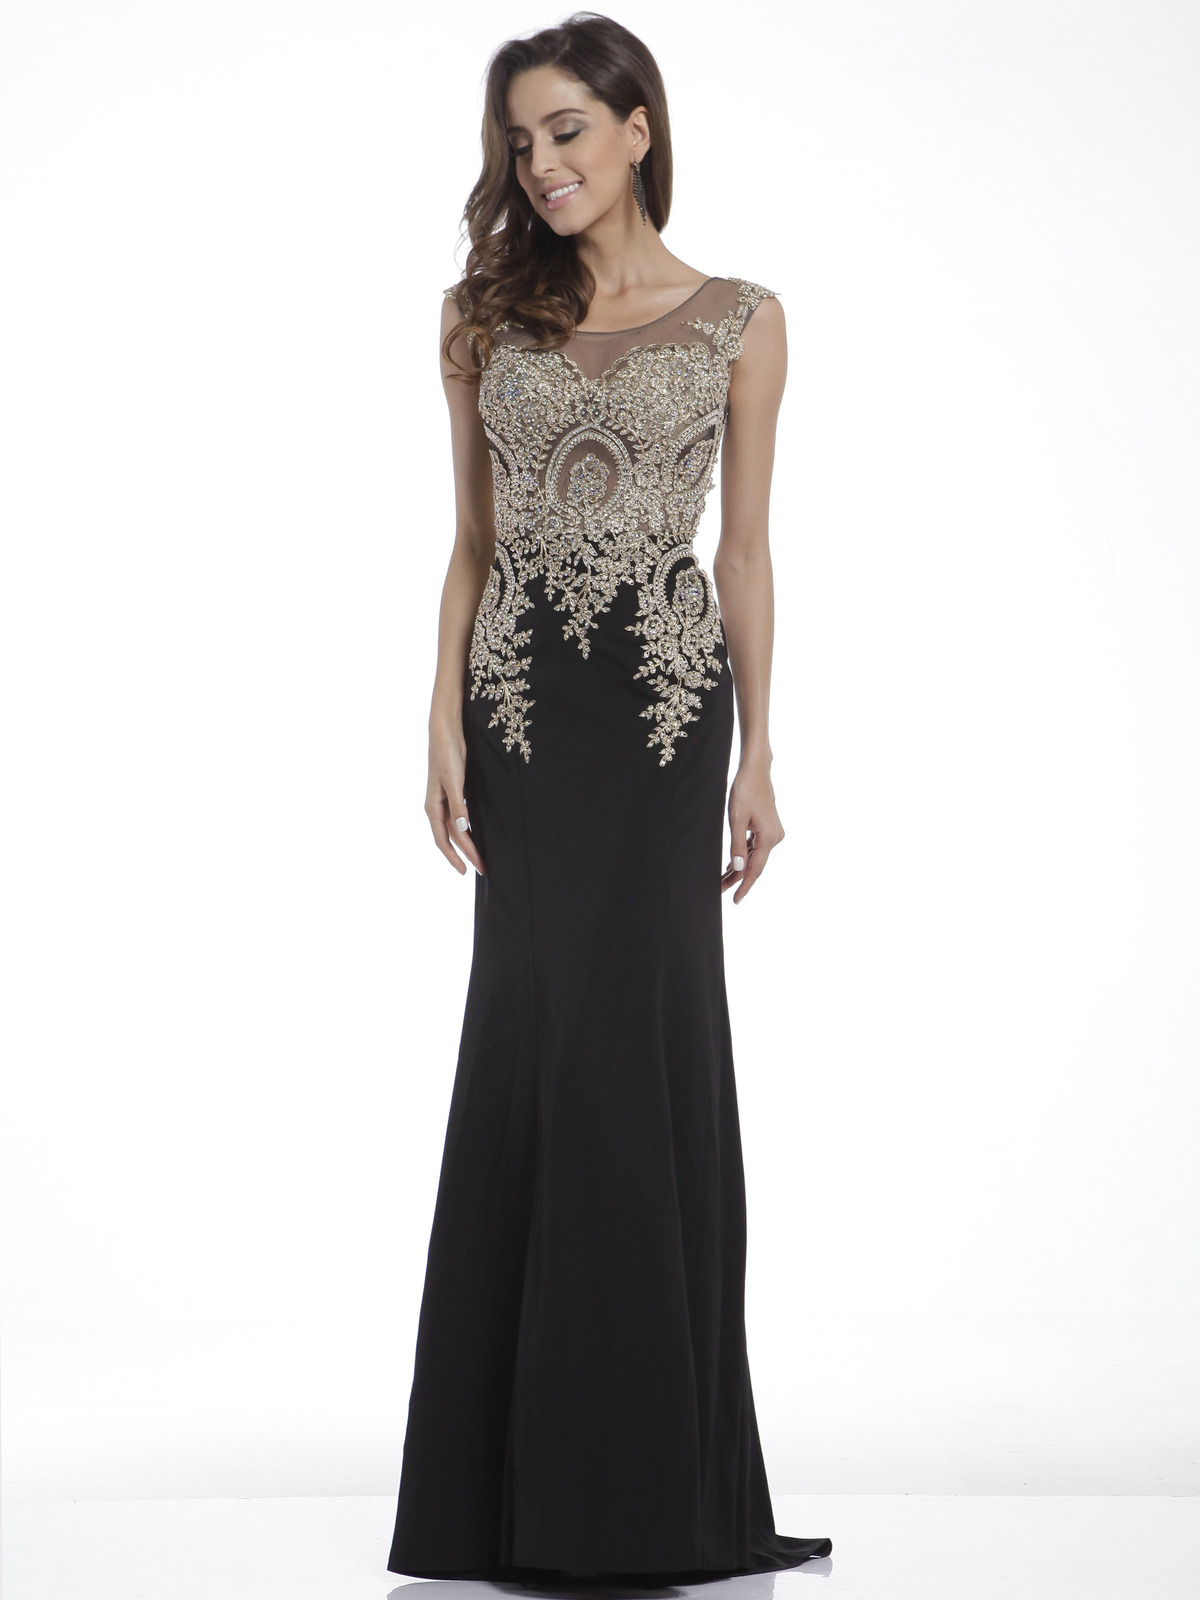 Cap Sleeves Embellished Long Evening Dress | Sung Boutique L.A.